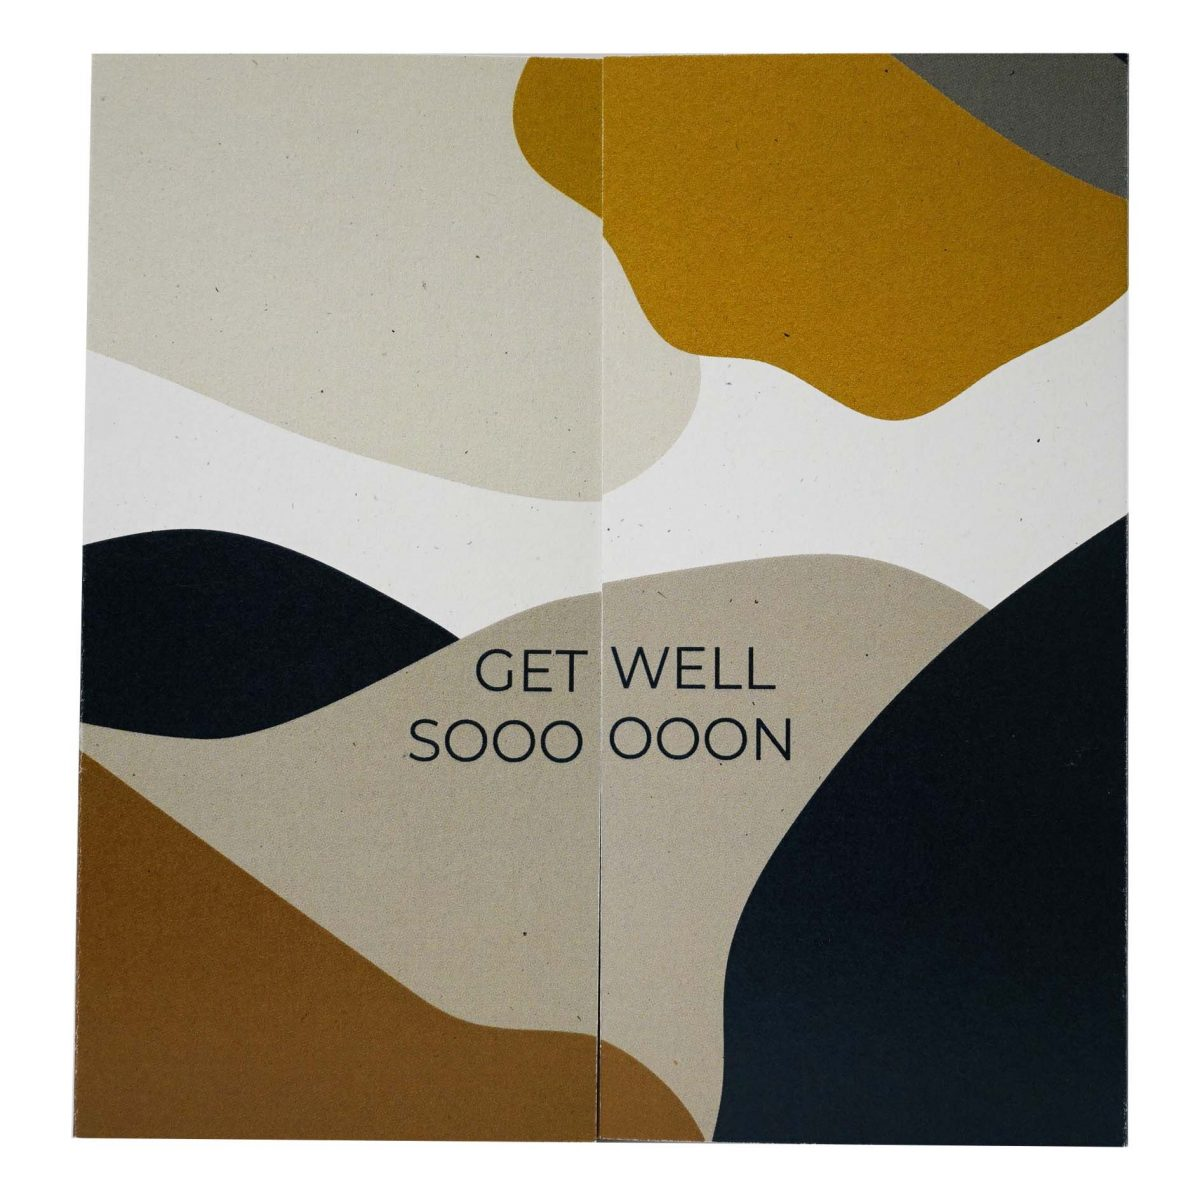 Get well soon front